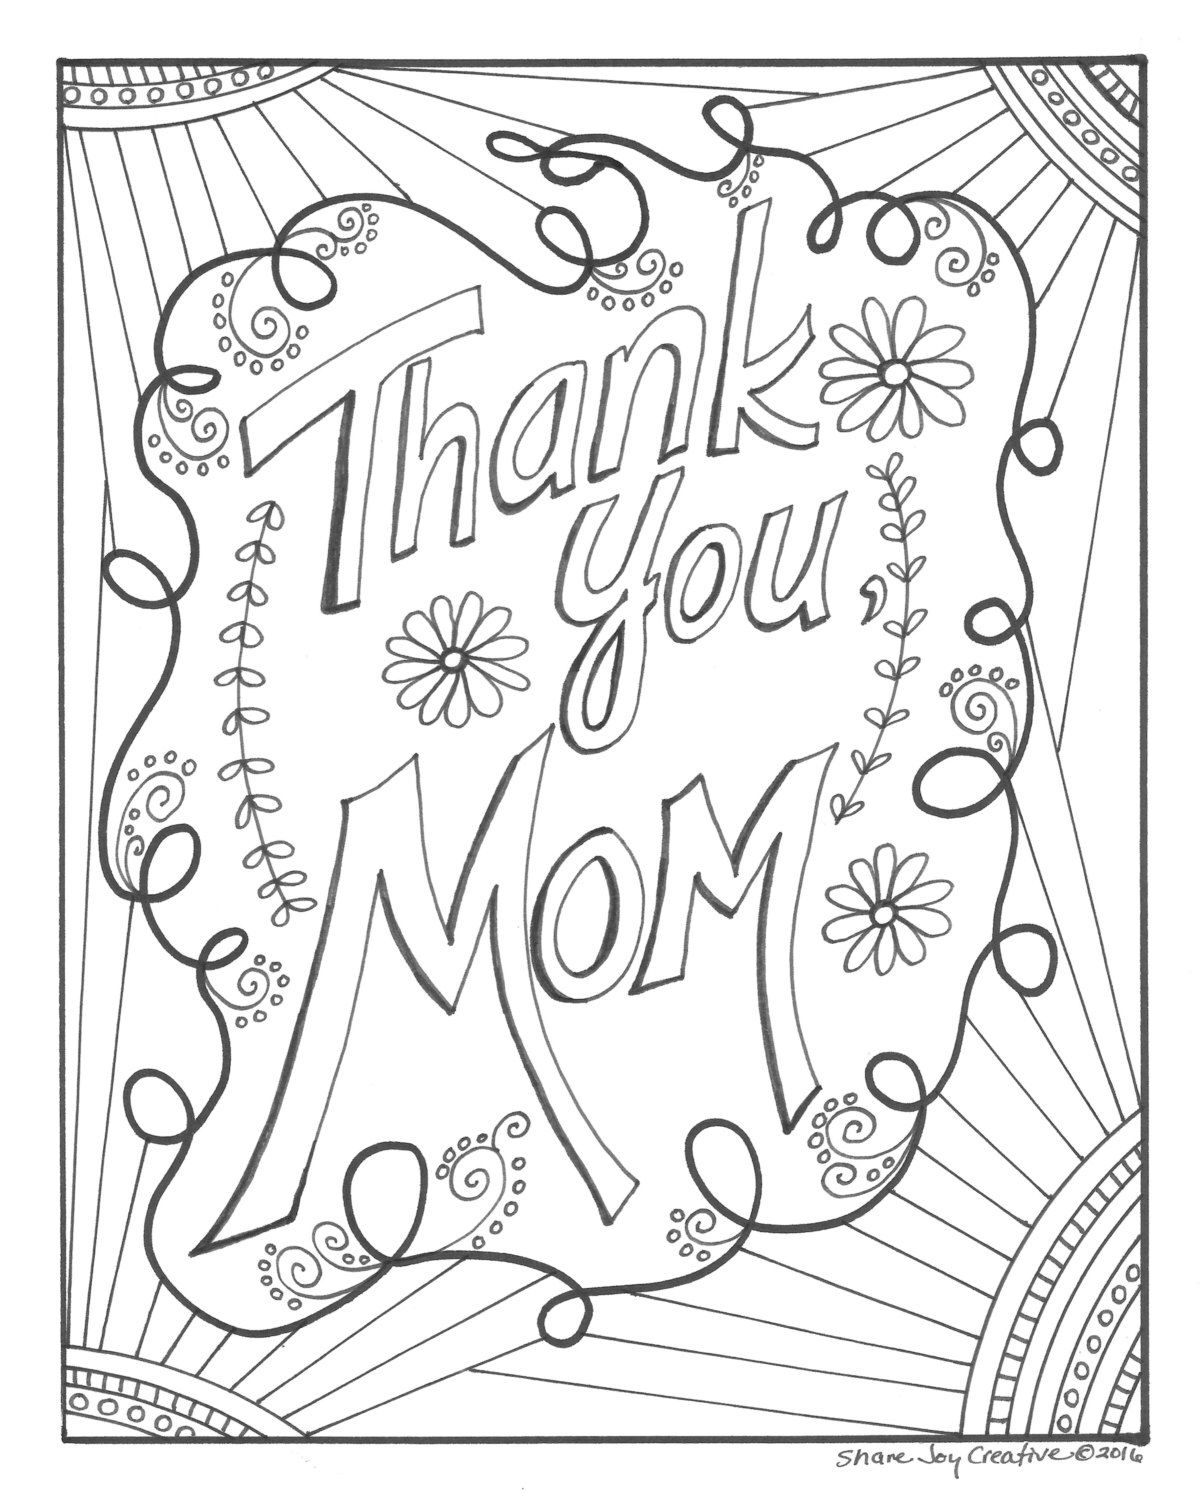 Thank You Mom Coloring Page Printable Coloring Page Etsy Mothers Day Coloring Pages Mom Coloring Pages Halloween Coloring Pages